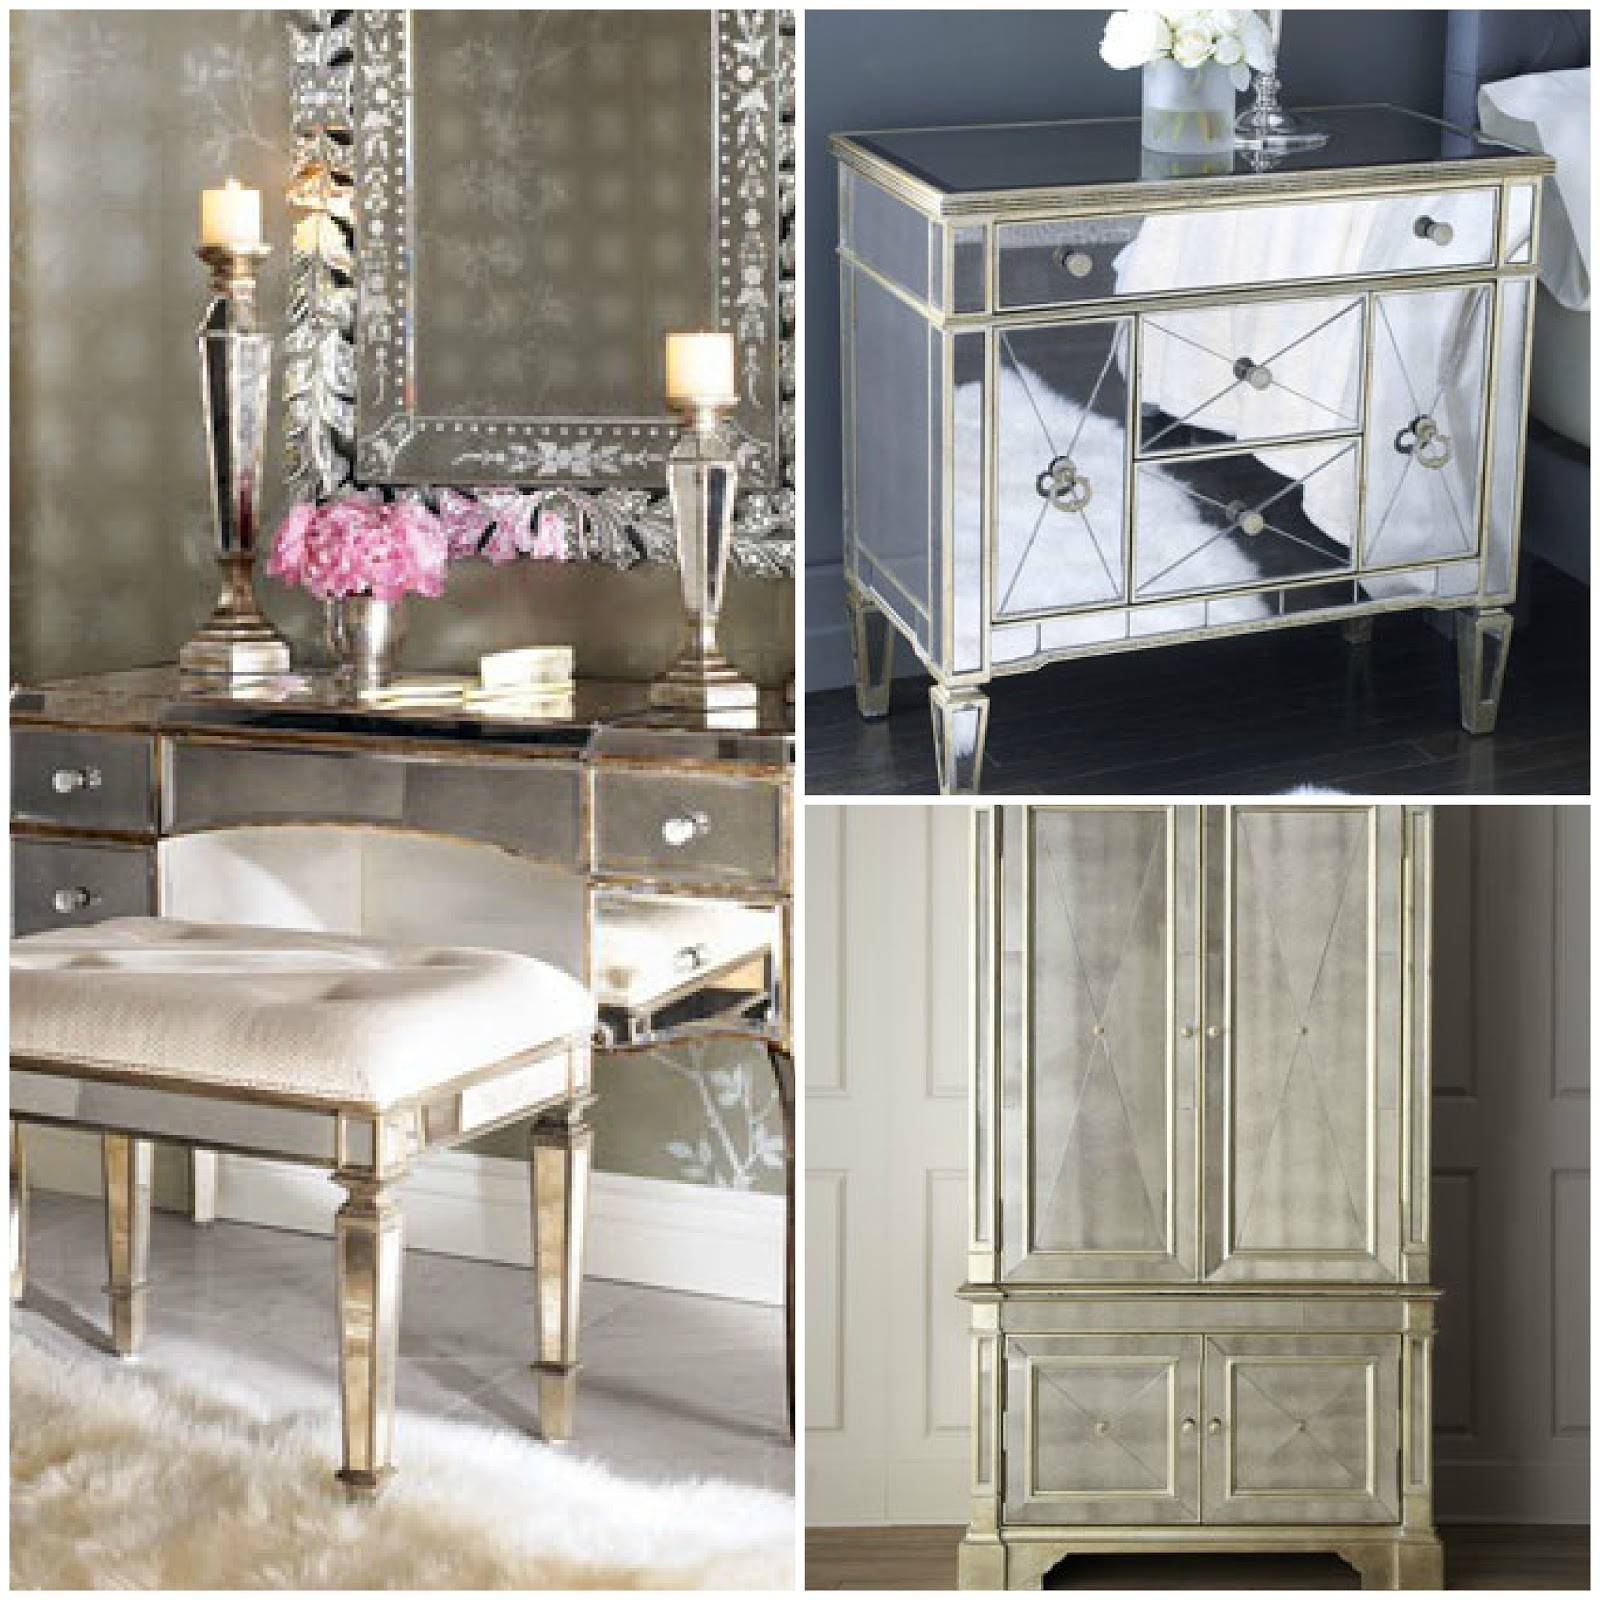 furniture upgrade your home with pretty mirrored dresser side tables and mirror bedside dressers mirrors buffet pier accent table bronze spray paint willow black white lamp